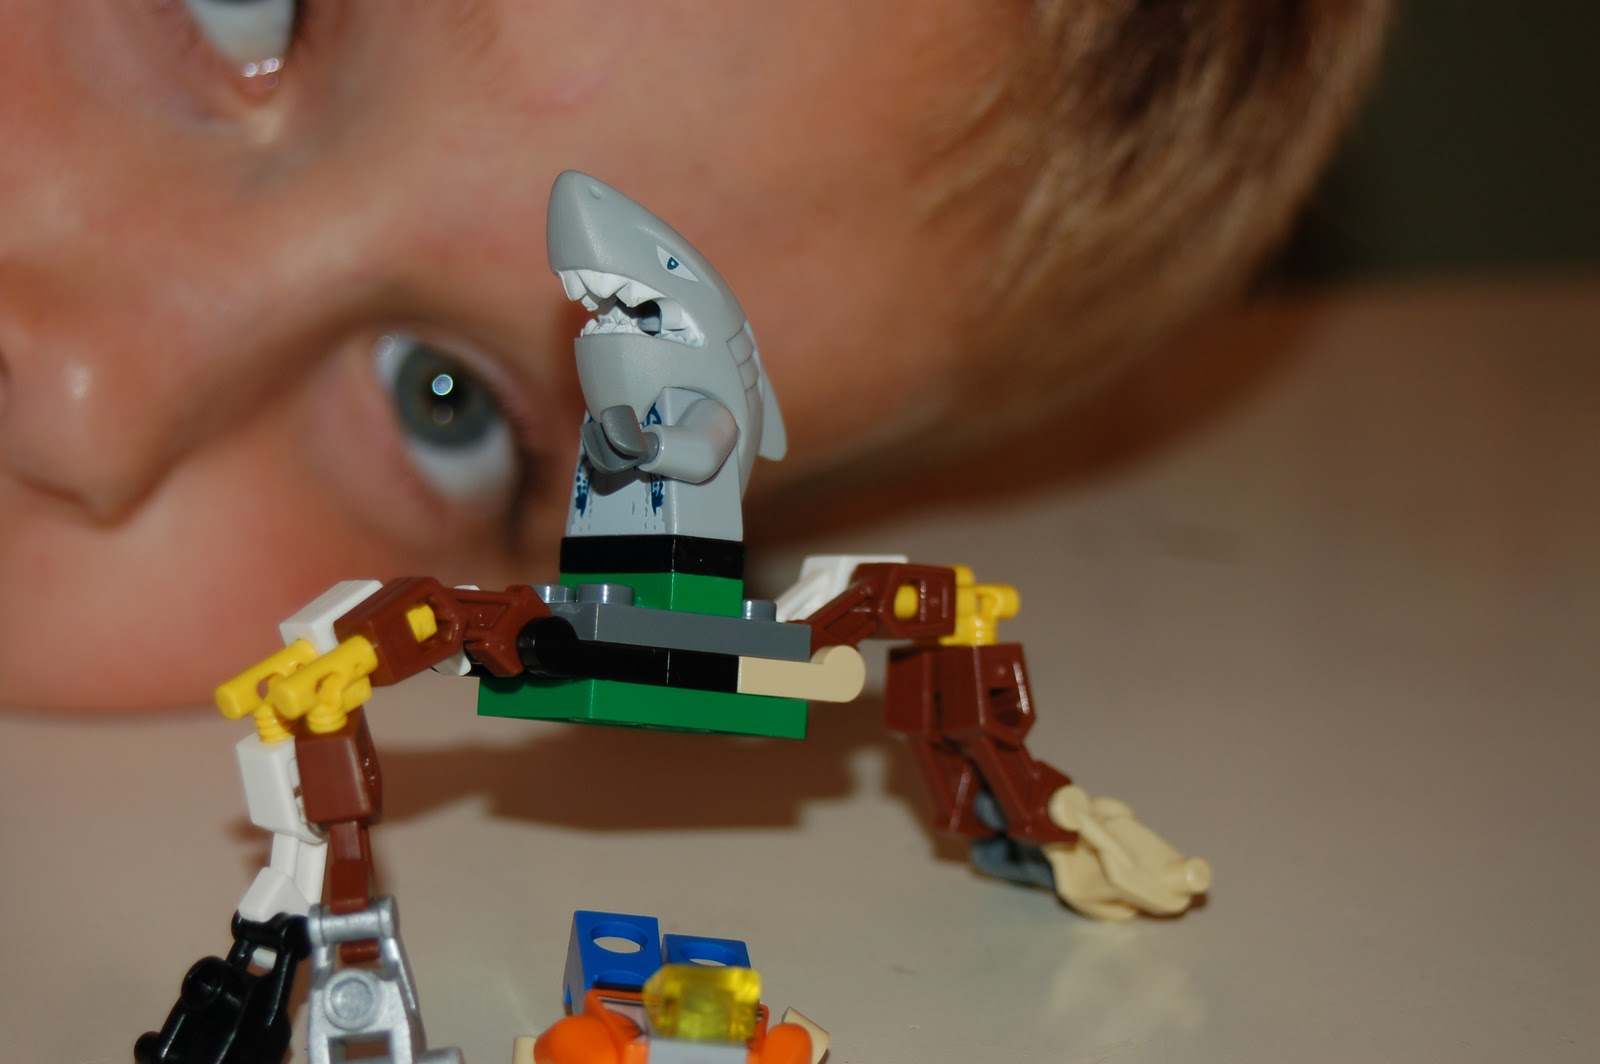 Lego Shark Toys For Boys : Portland comics yeah lets get out of here sharktopus